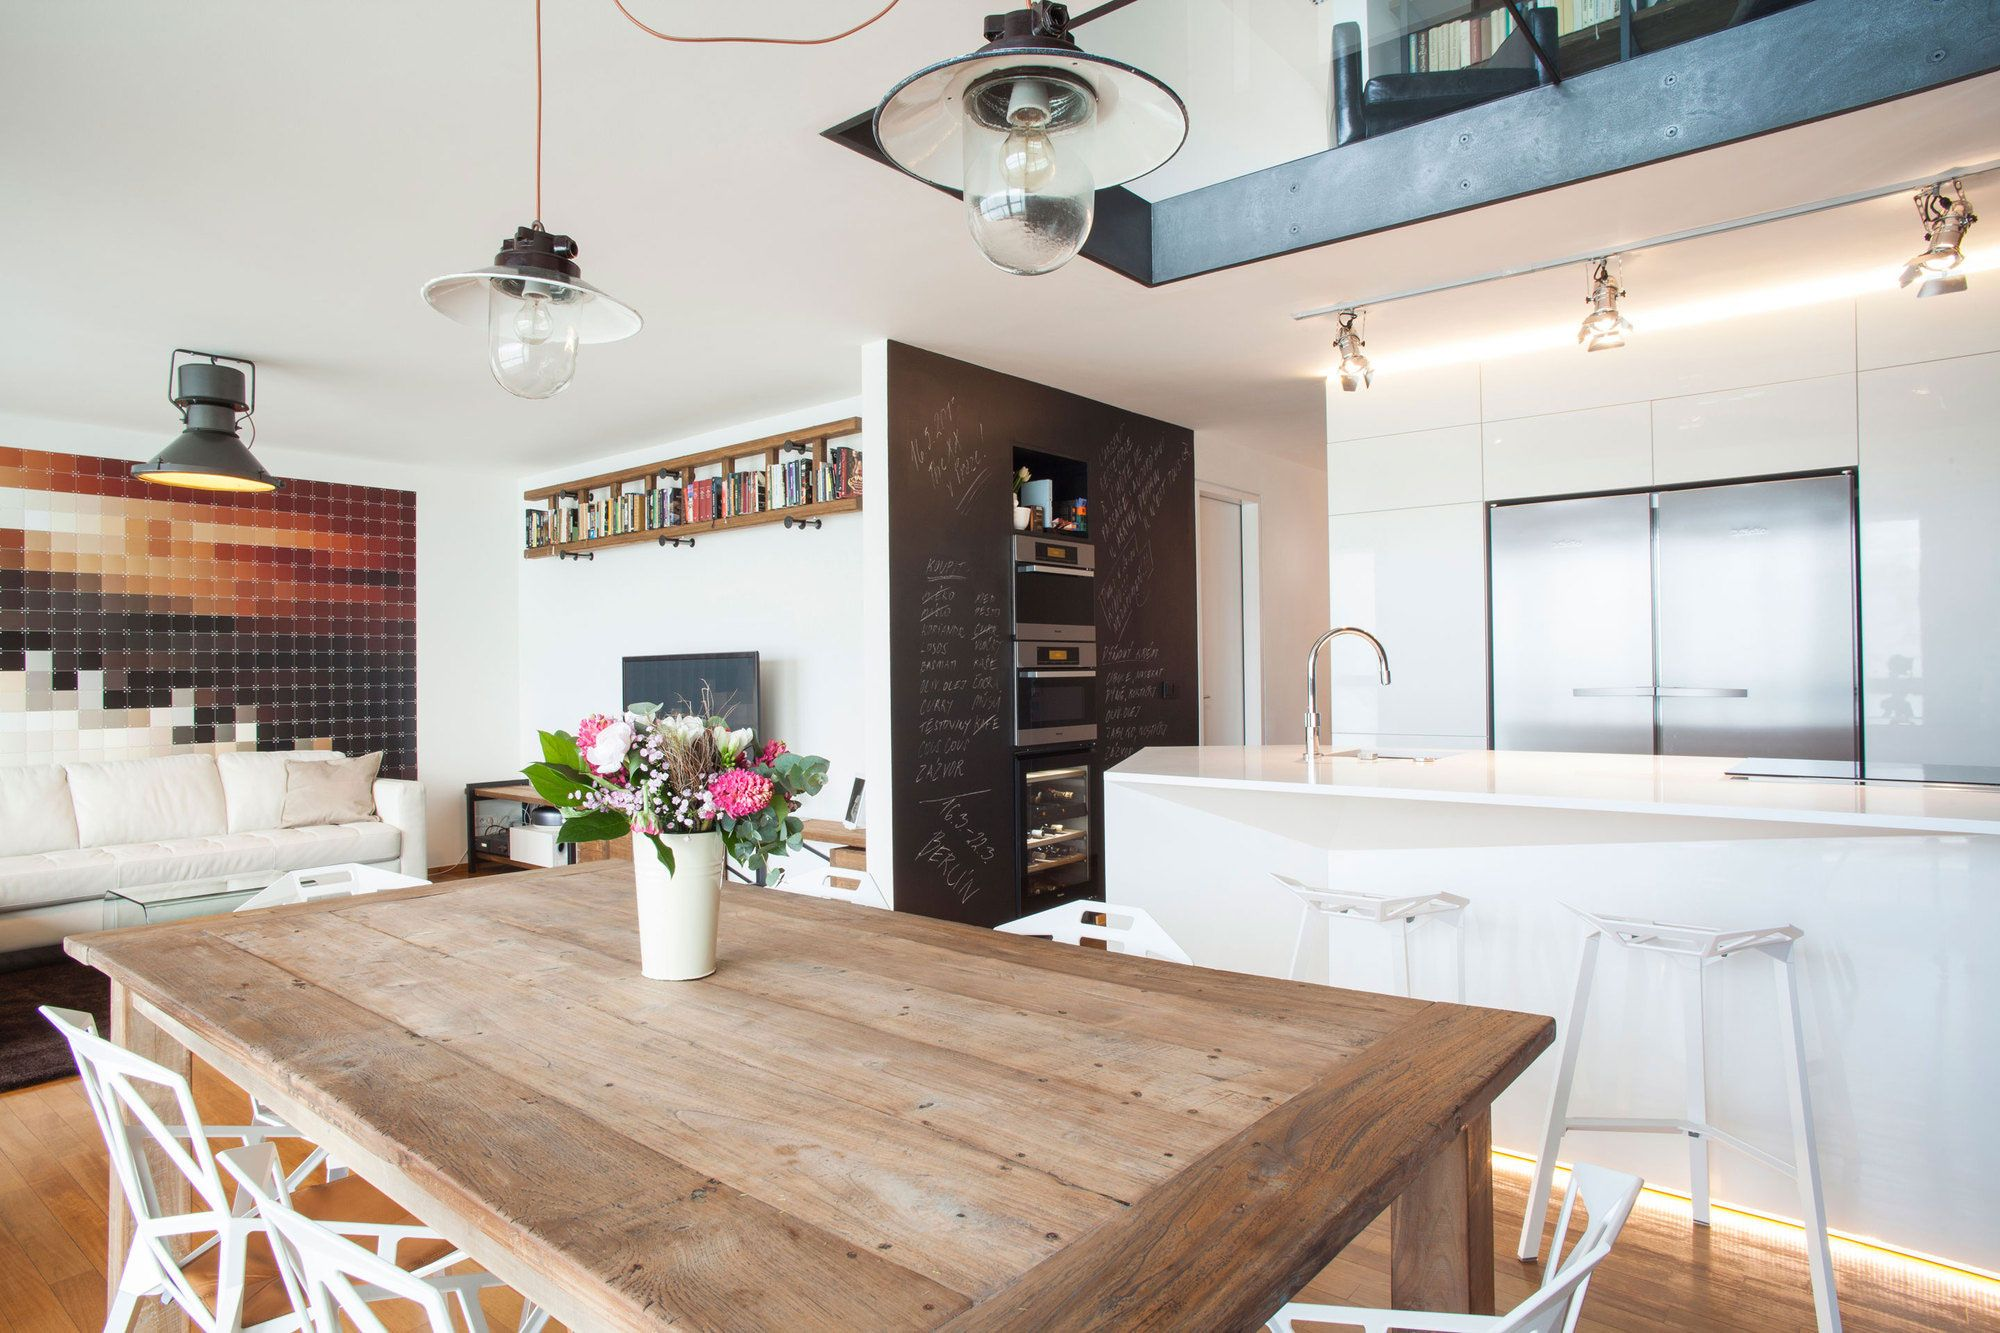 Dog leg open plan kitchen / dining / lounge | Ranger Rd kitchen ...